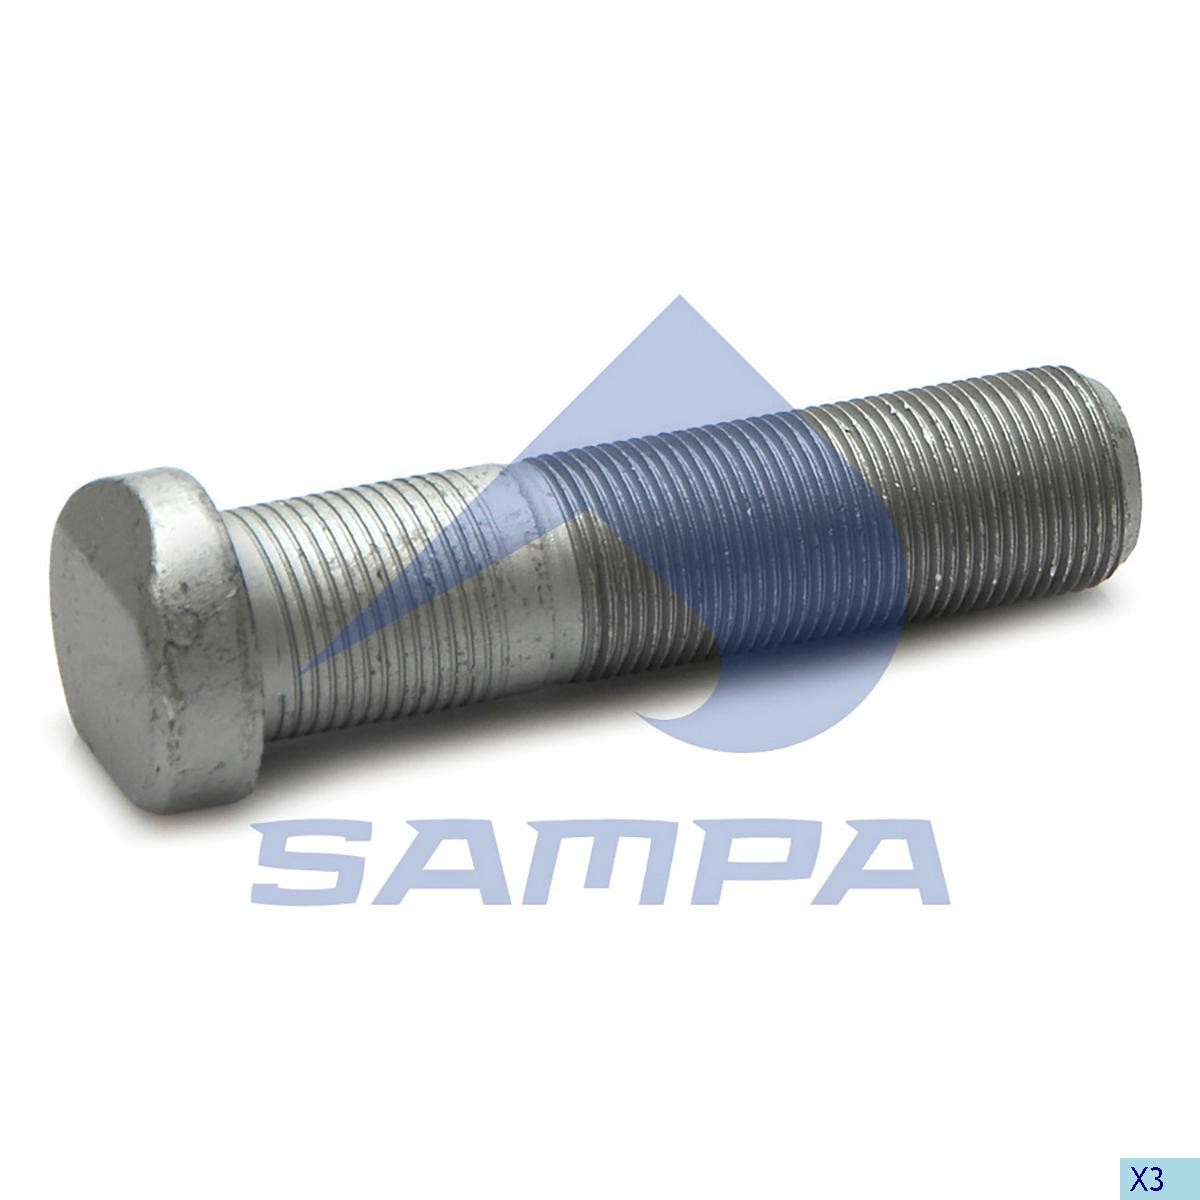 Bolt roata Actors М22х1,5 90мм photo